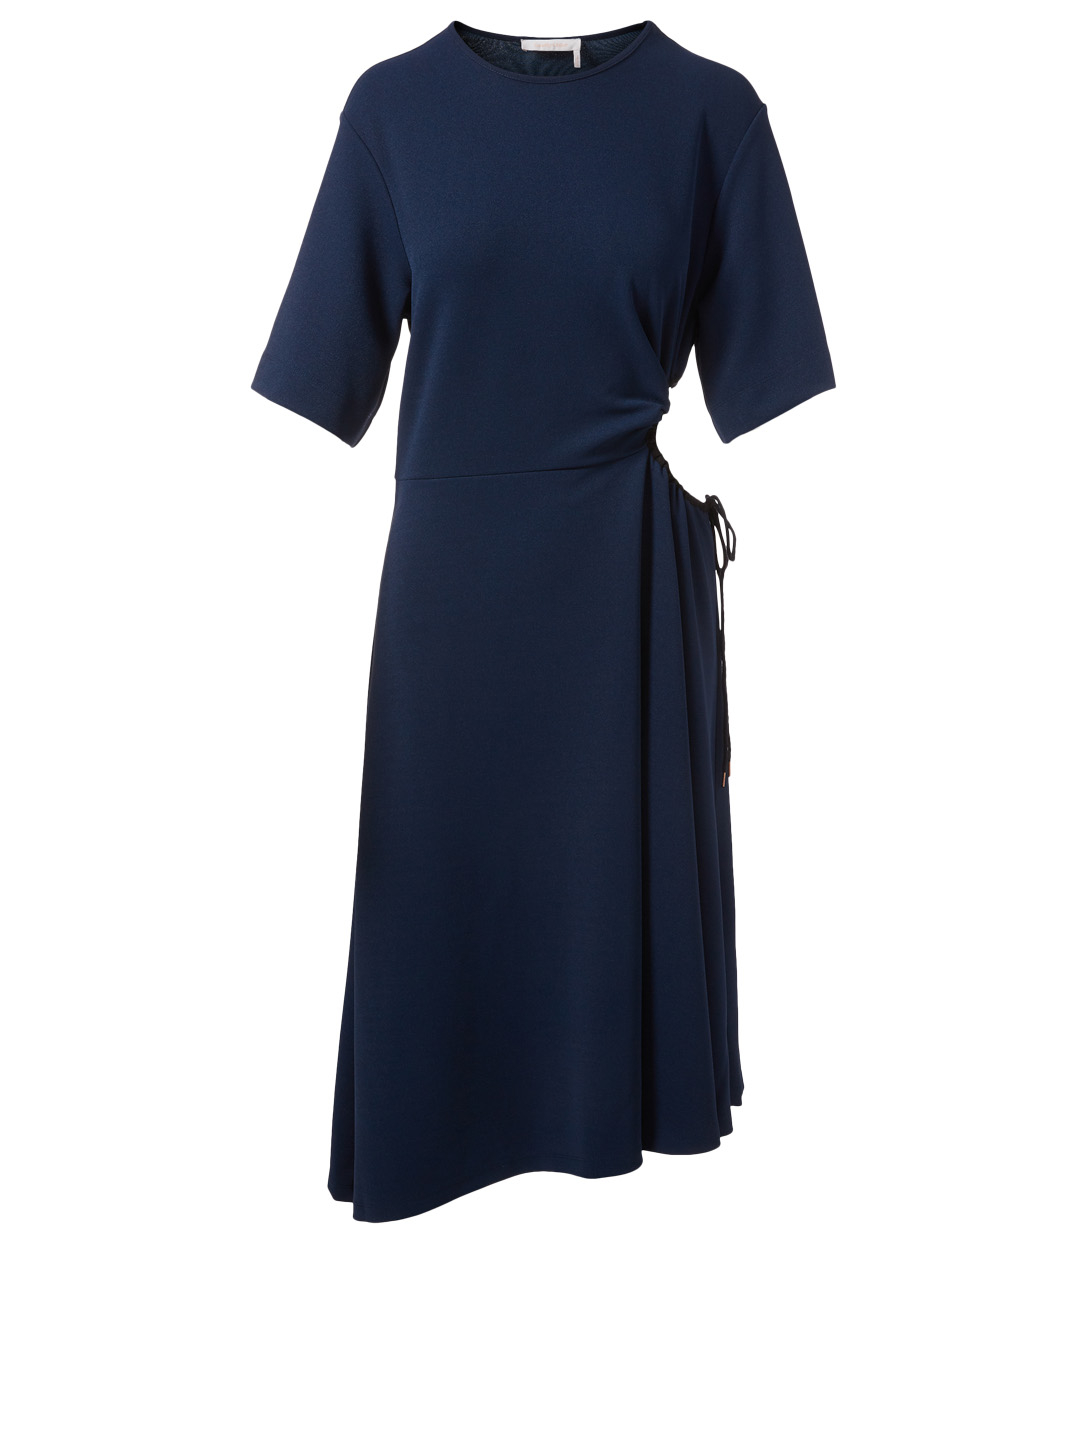 SEE BY CHLOÉ Cut-Out Midi Dress Women's Blue